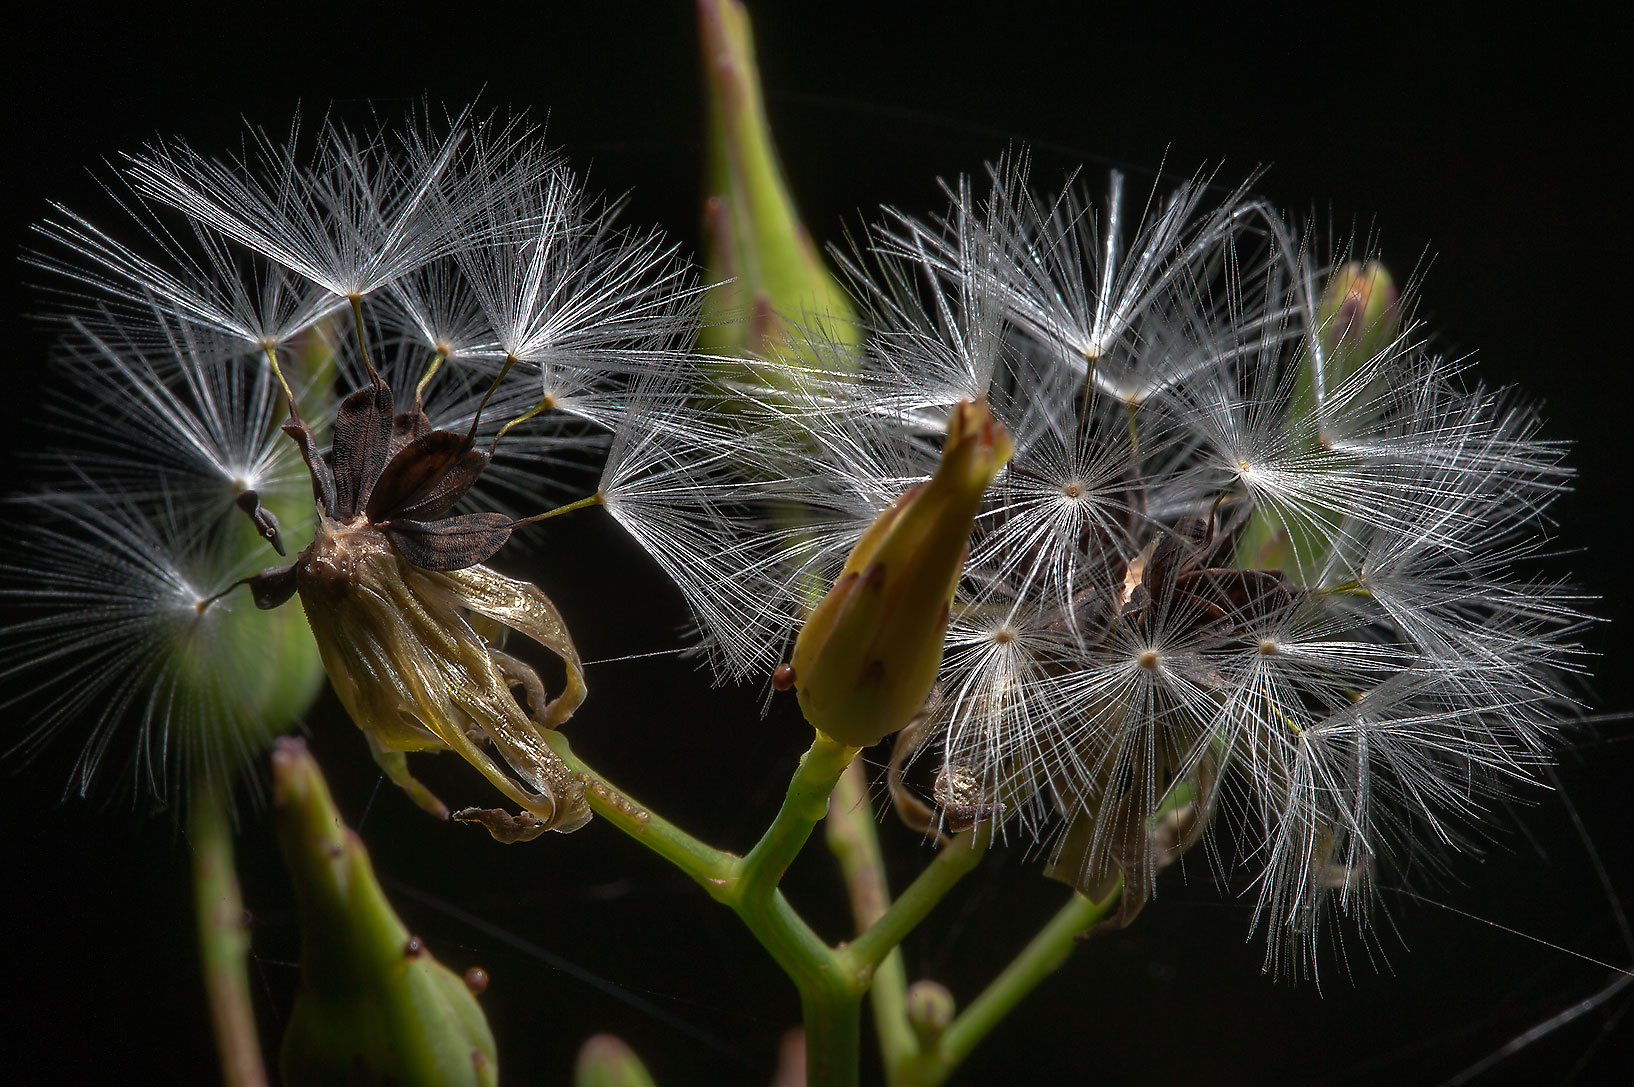 Seeds of woodland lettuce (Lactuca floridana ) in Lick Creek Park. College Station, Texas